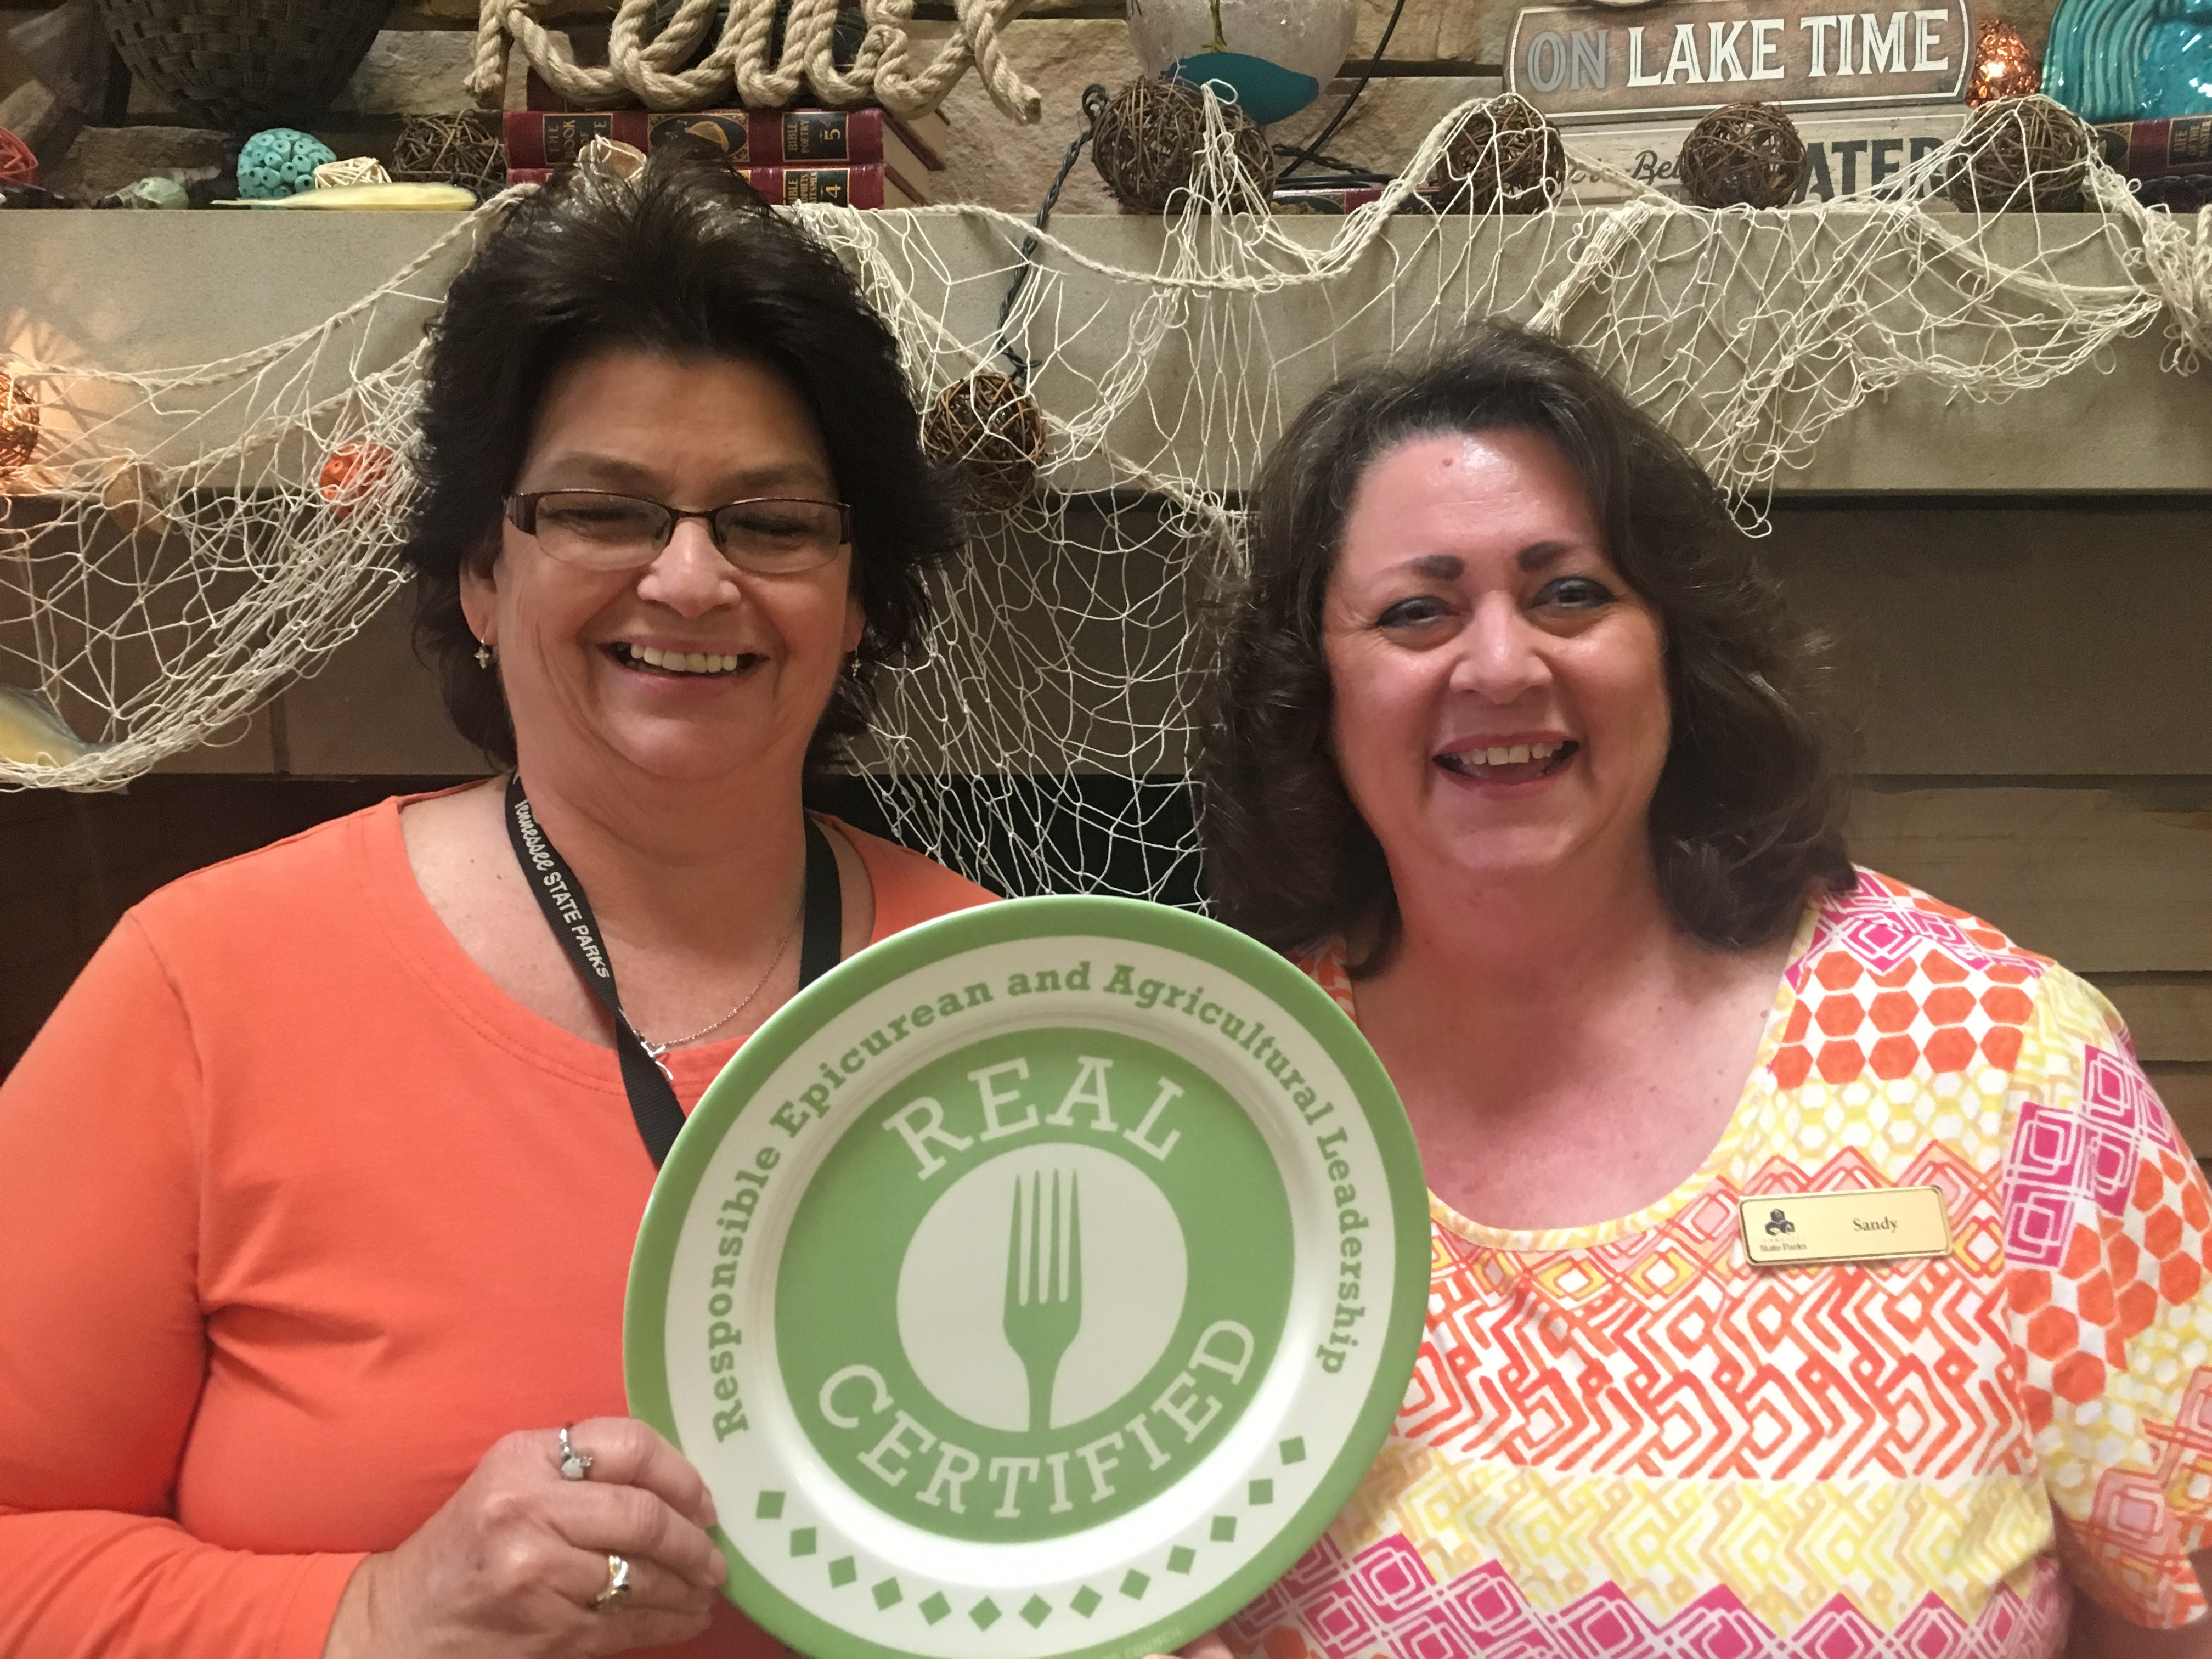 Pickwick Landing achieves Eat Real Certification.